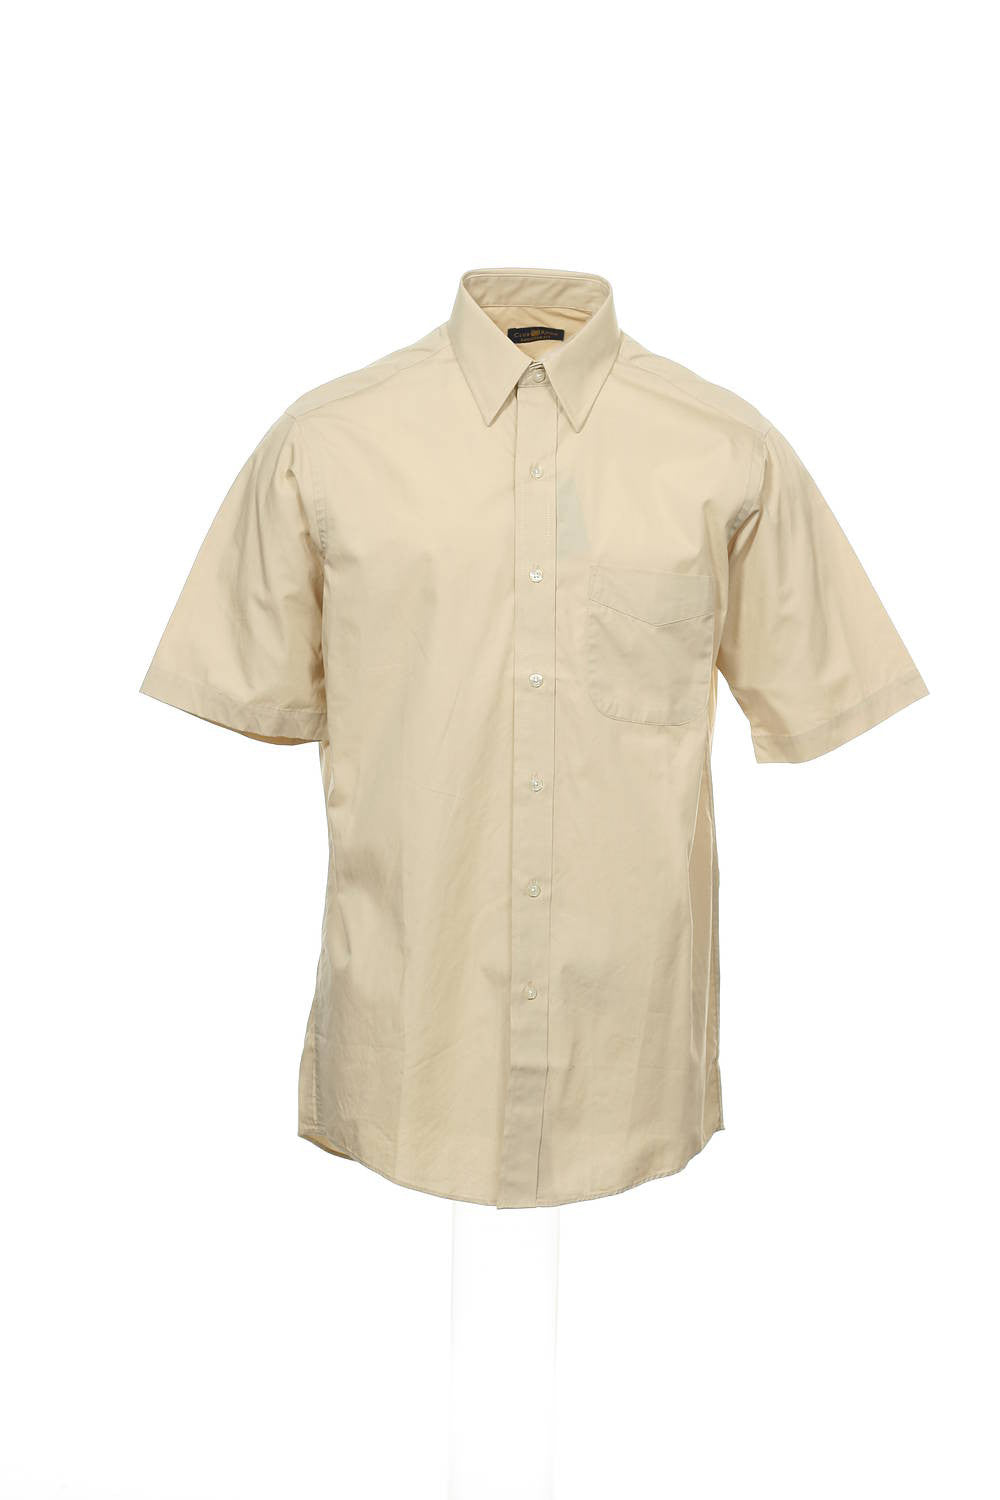 The Estate Dress Shirt by Club Room Mens Khaki Button Down Shirt